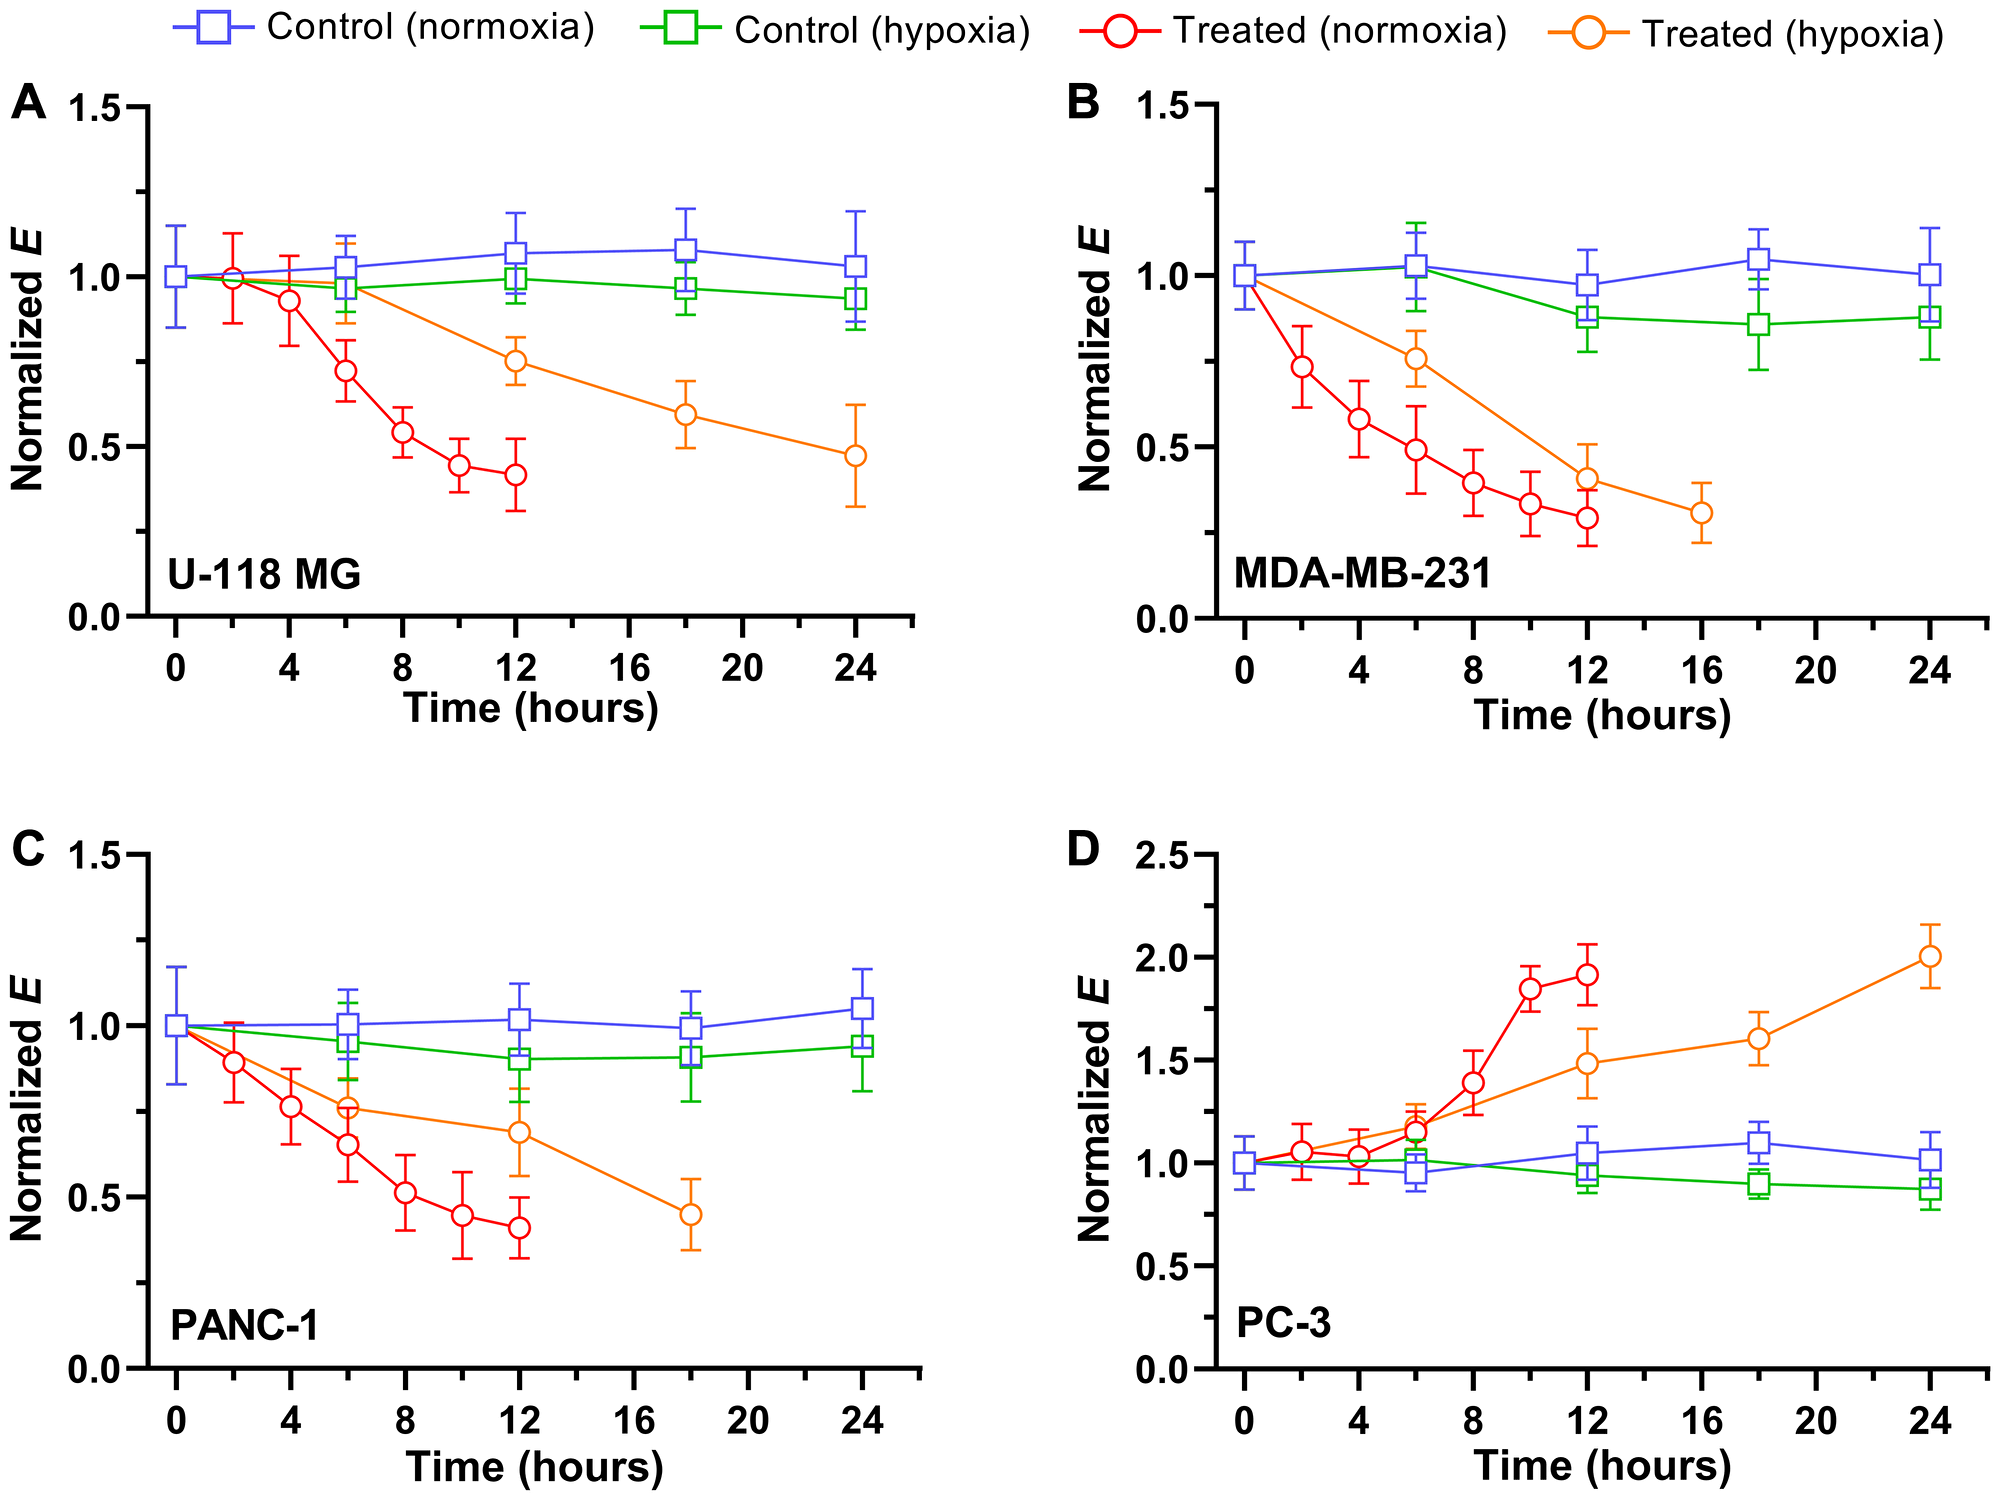 Time trace of normalized Young's modulus E after exposure to 5 μM drugs in normoxia and hypoxia.